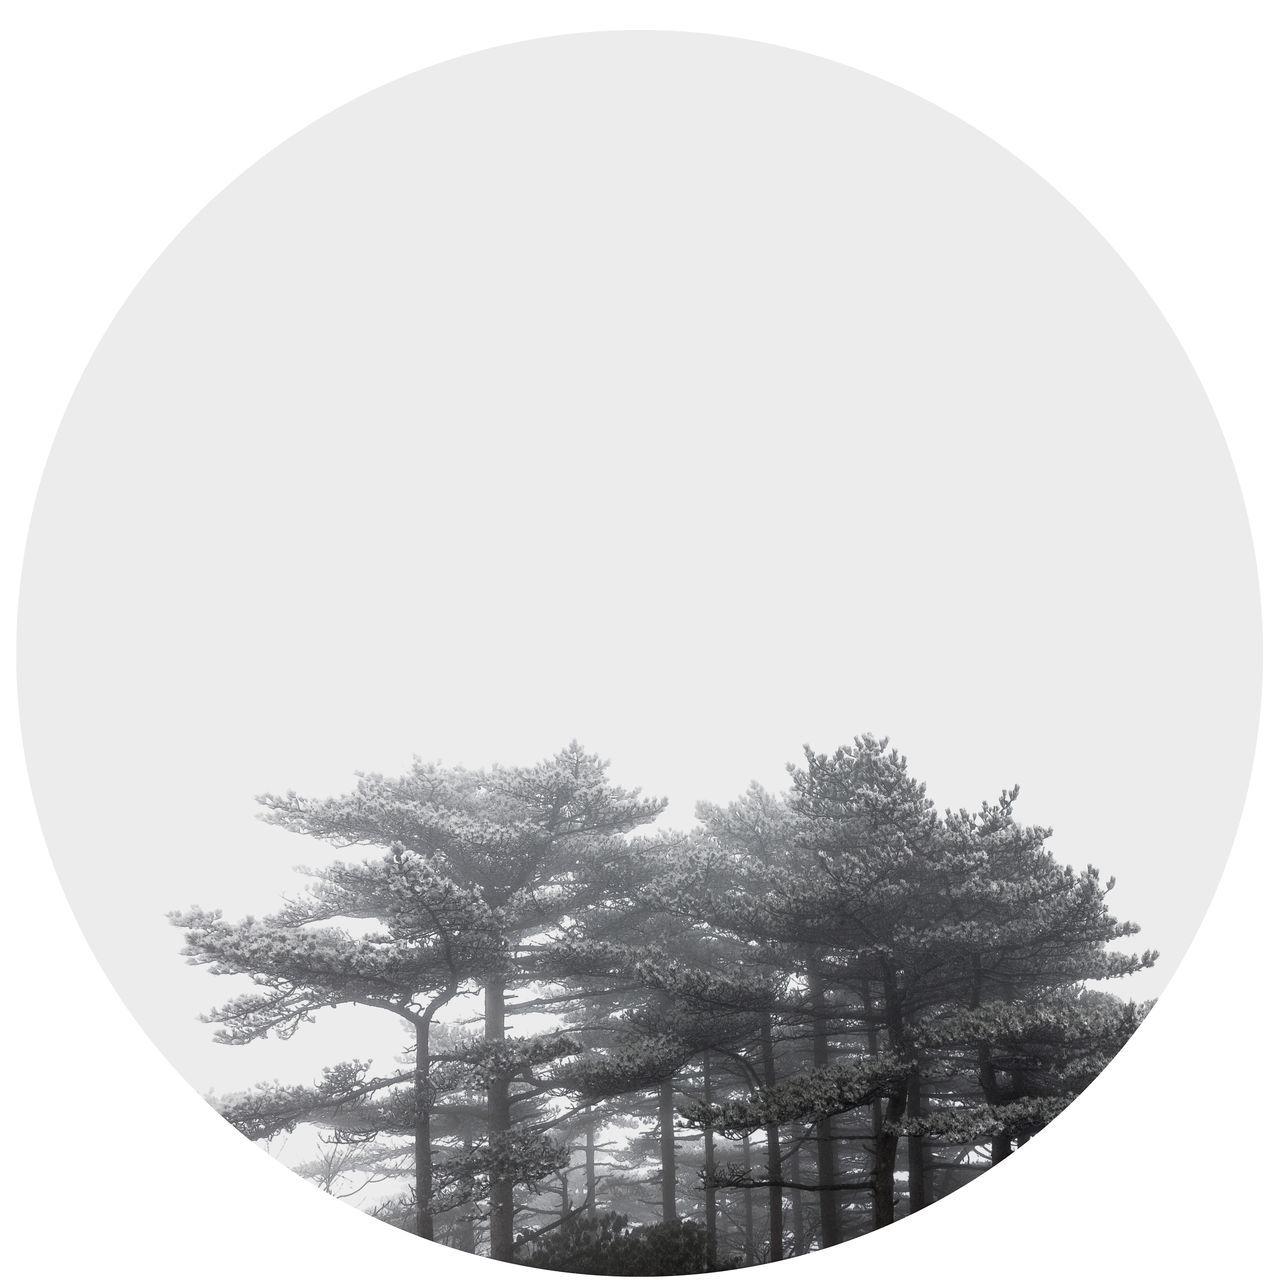 White Background No People Tree Shape Outdoors Watercolor Painting China Ink Pattern Huangshan Mountains ELLIPSE Nature Speech Bubble